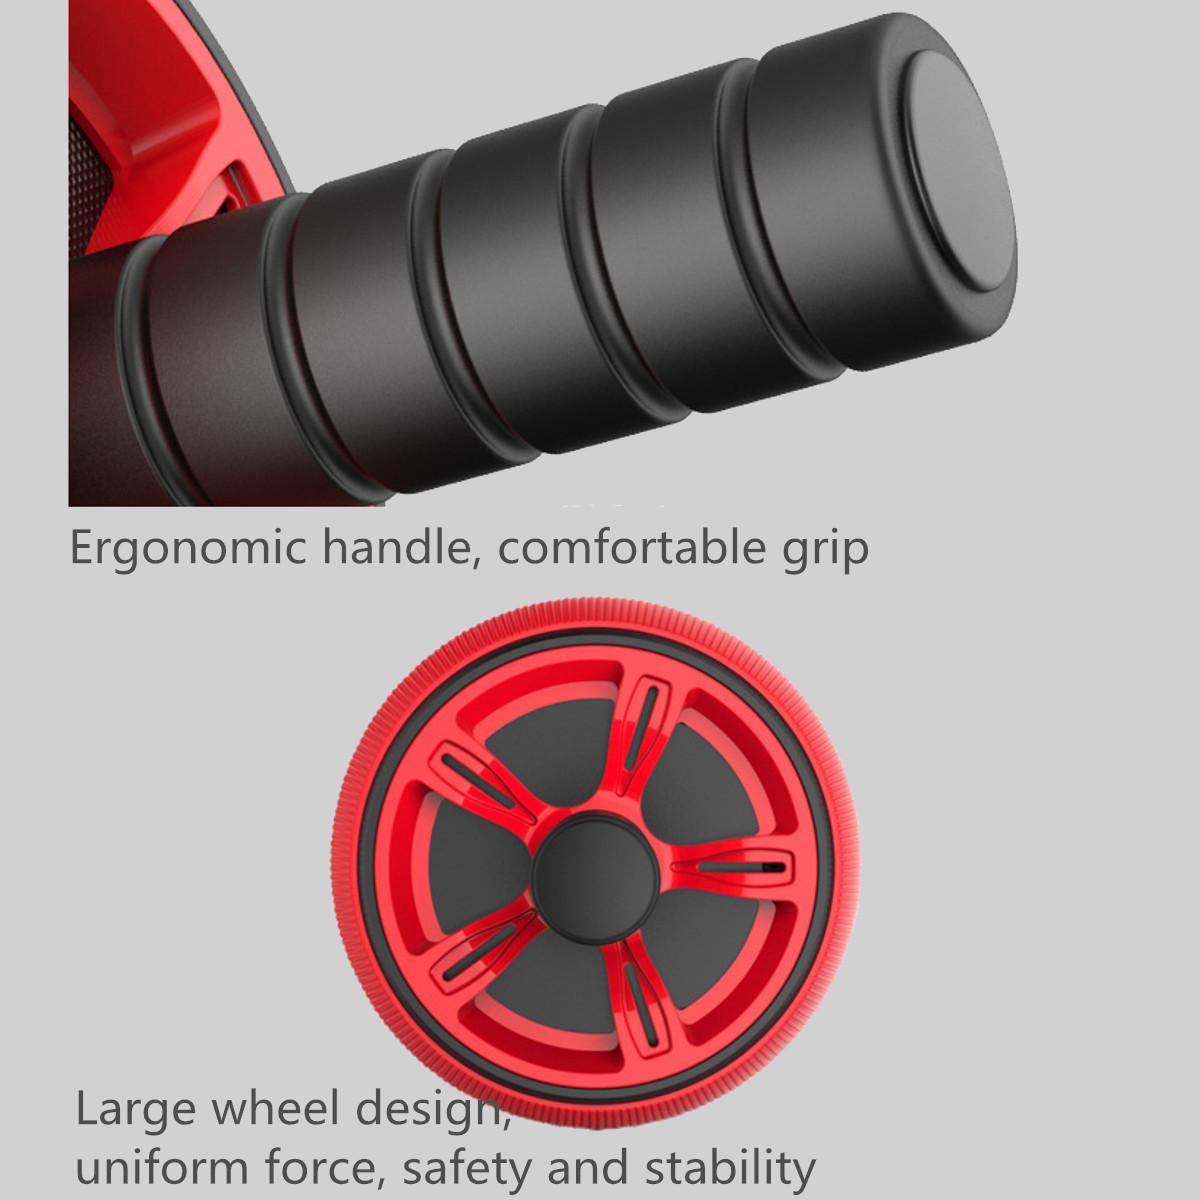 Abs Roller with Strong Bearing Capacity Ideal for burning Extra Calories from Arms Back and Belly 10